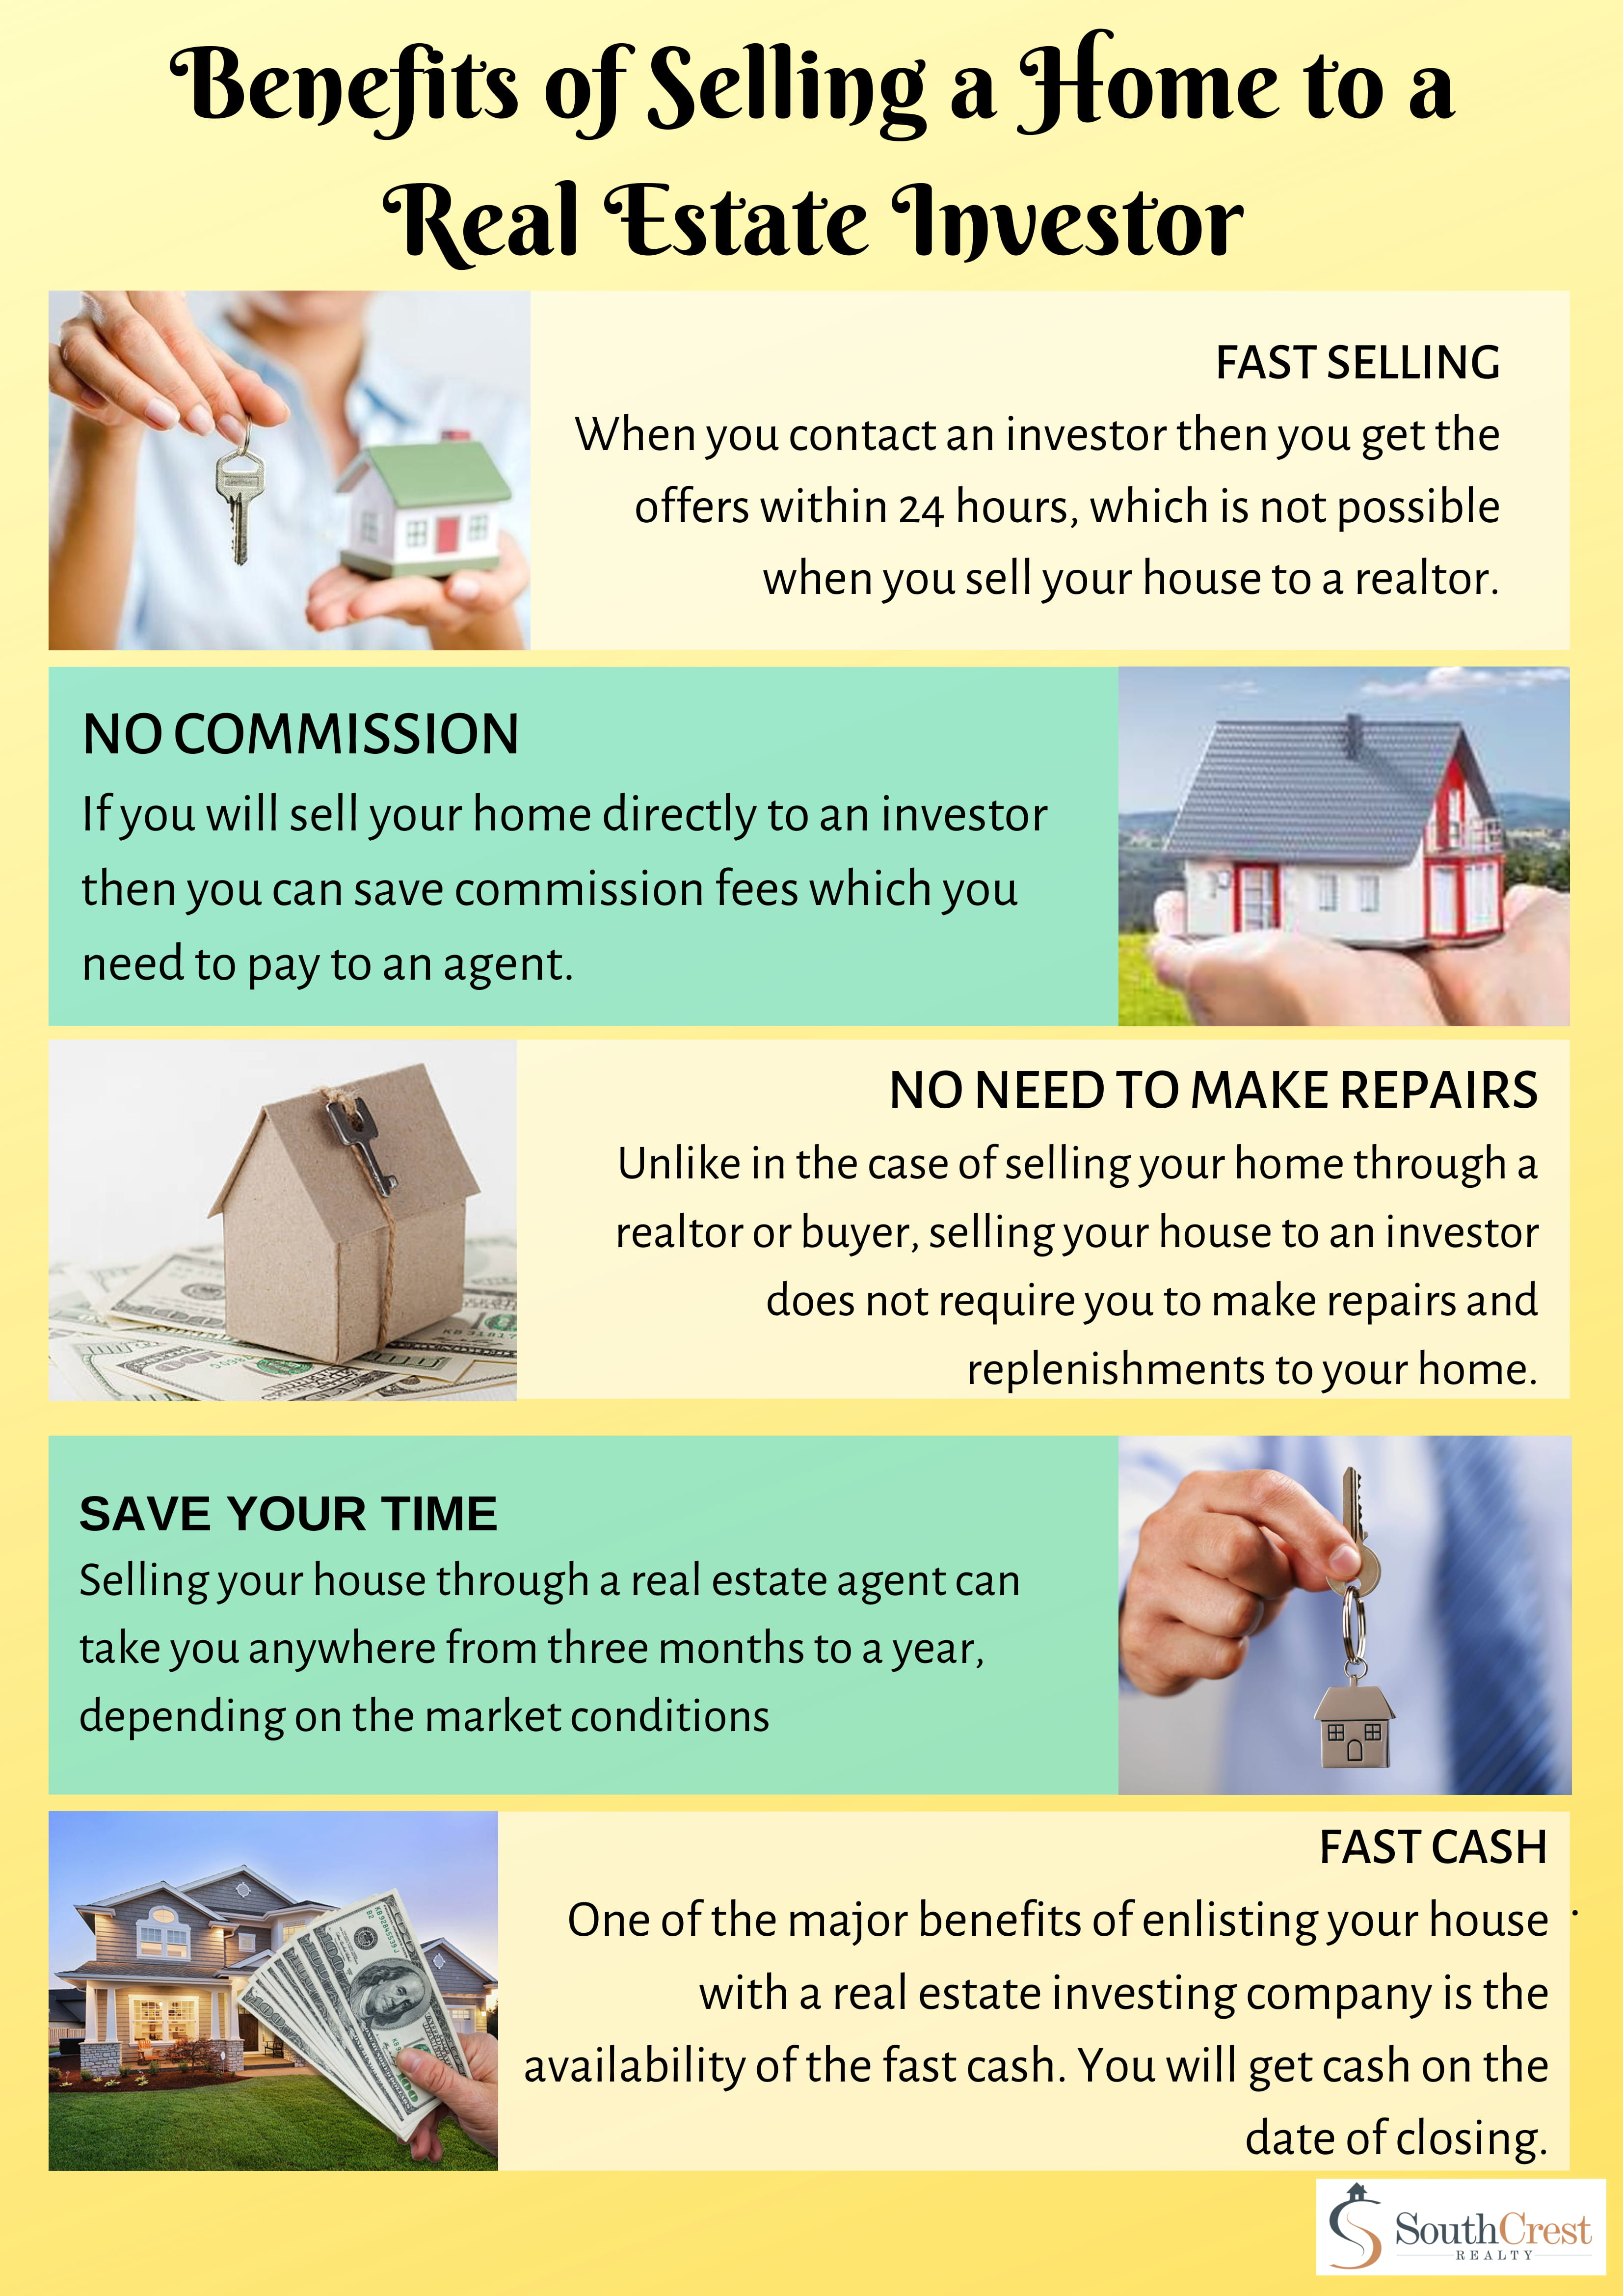 Selling a Home to a Real Estate Investor